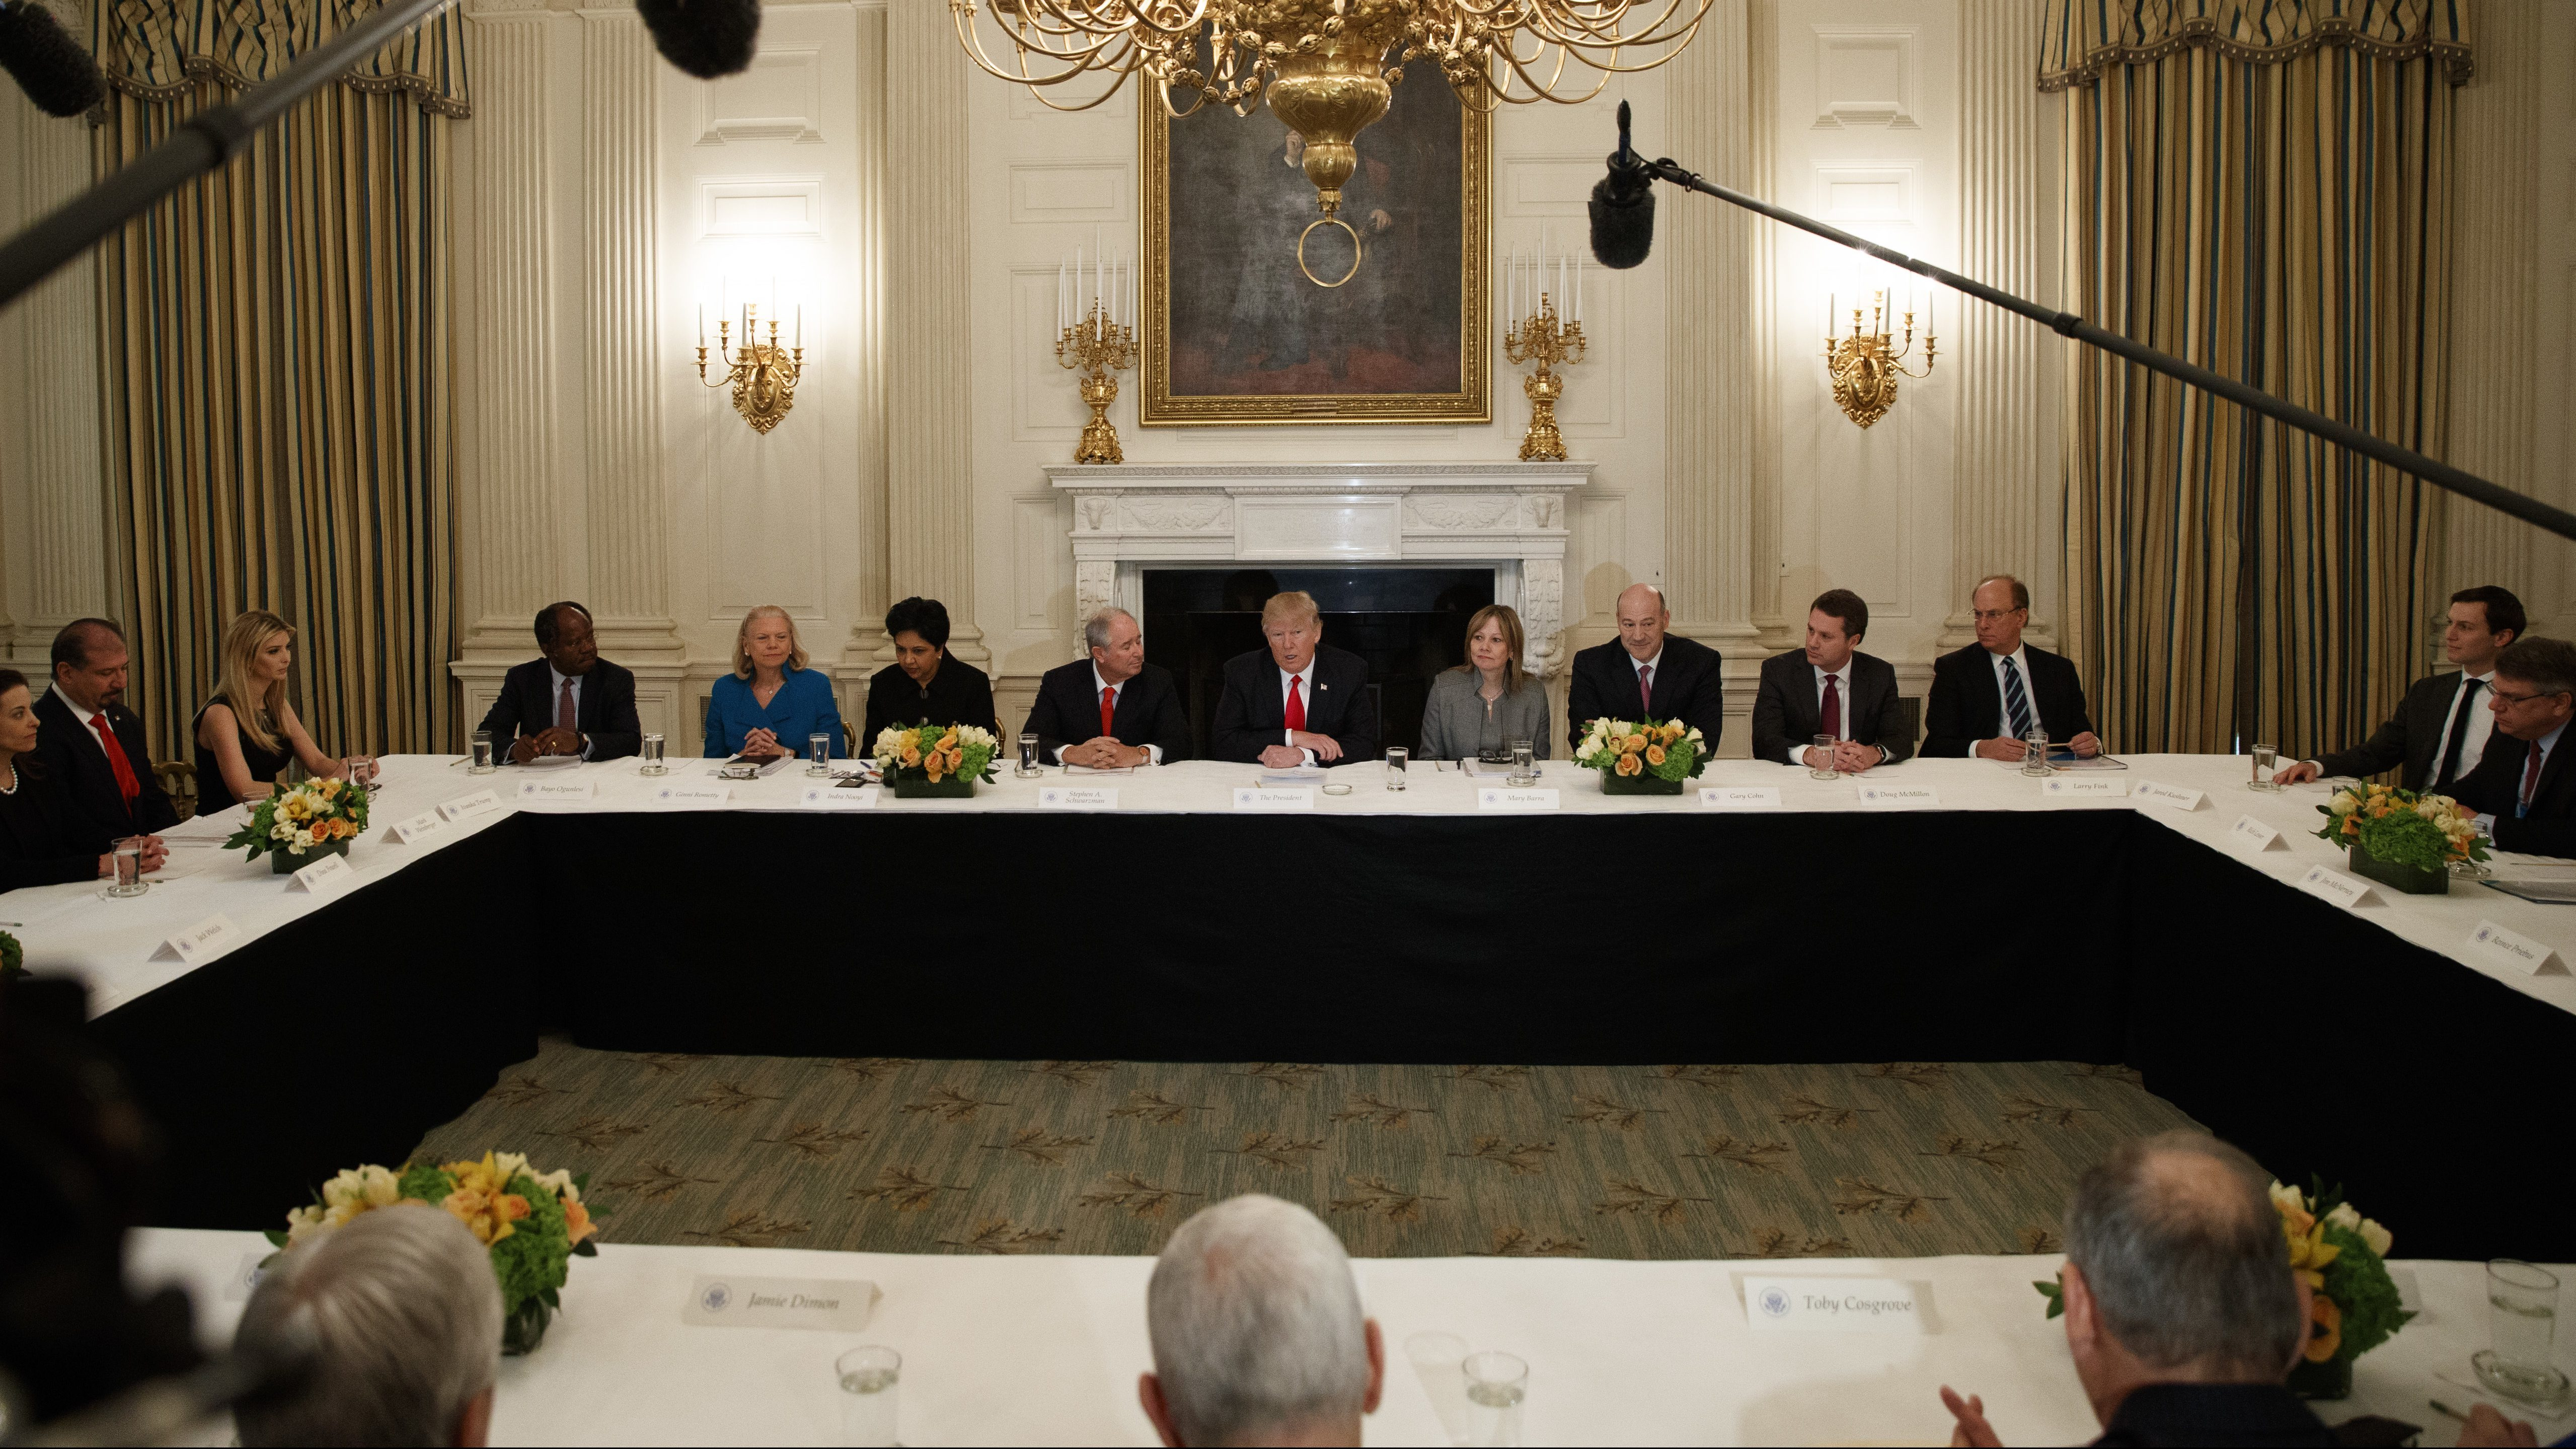 President Donald Trump speaks during a meeting with business leaders in the State Dining Room of the White House in Washington, Friday, Feb. 3, 2017.